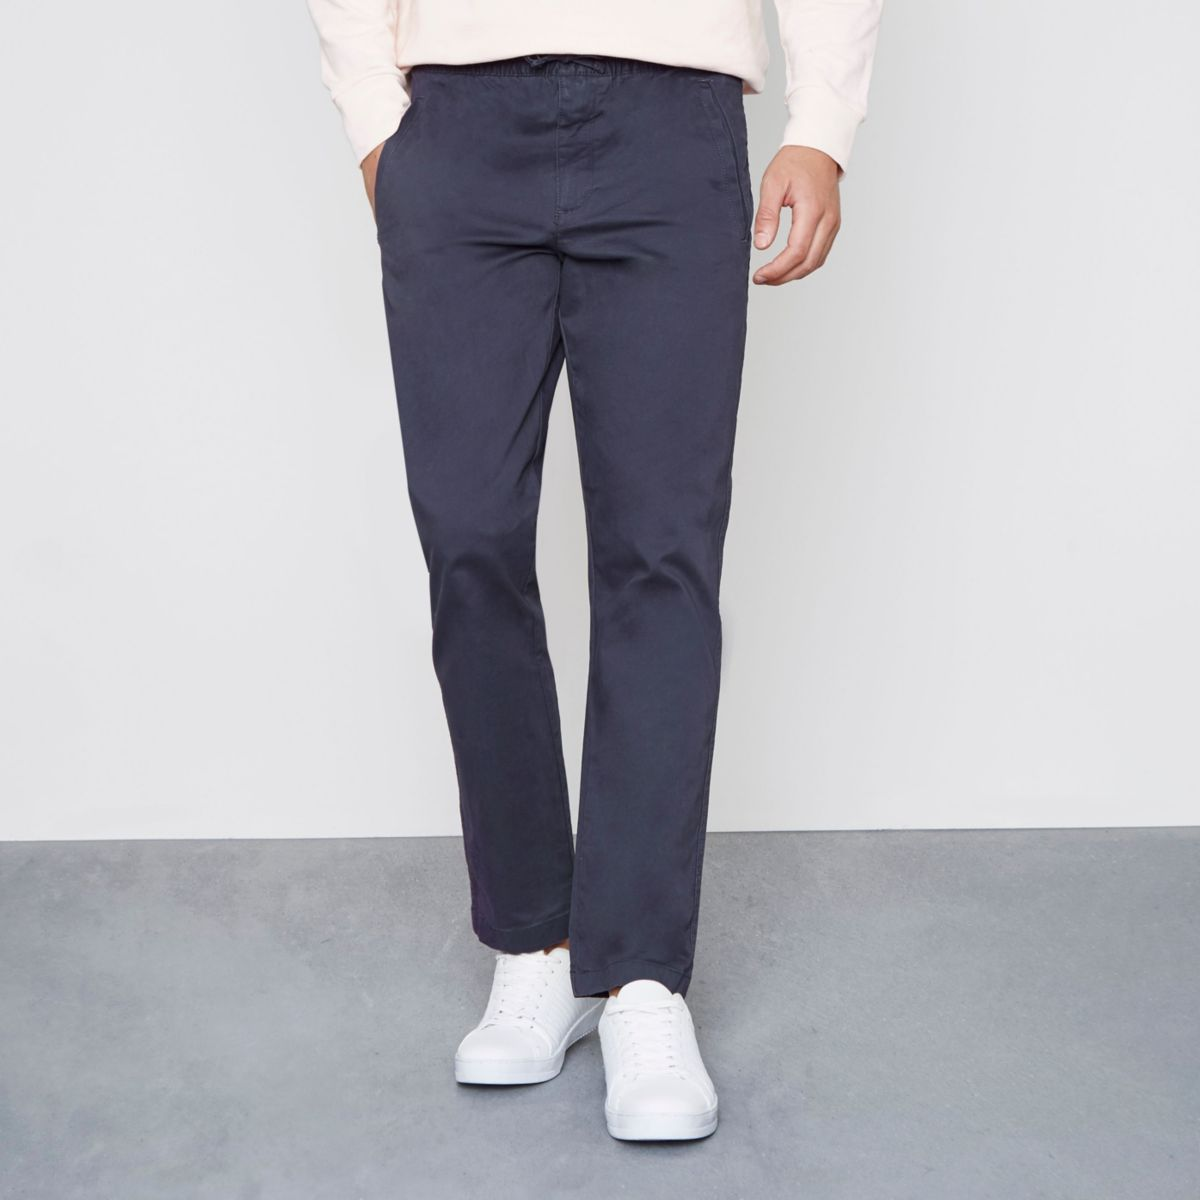 Navy pull on chino pants